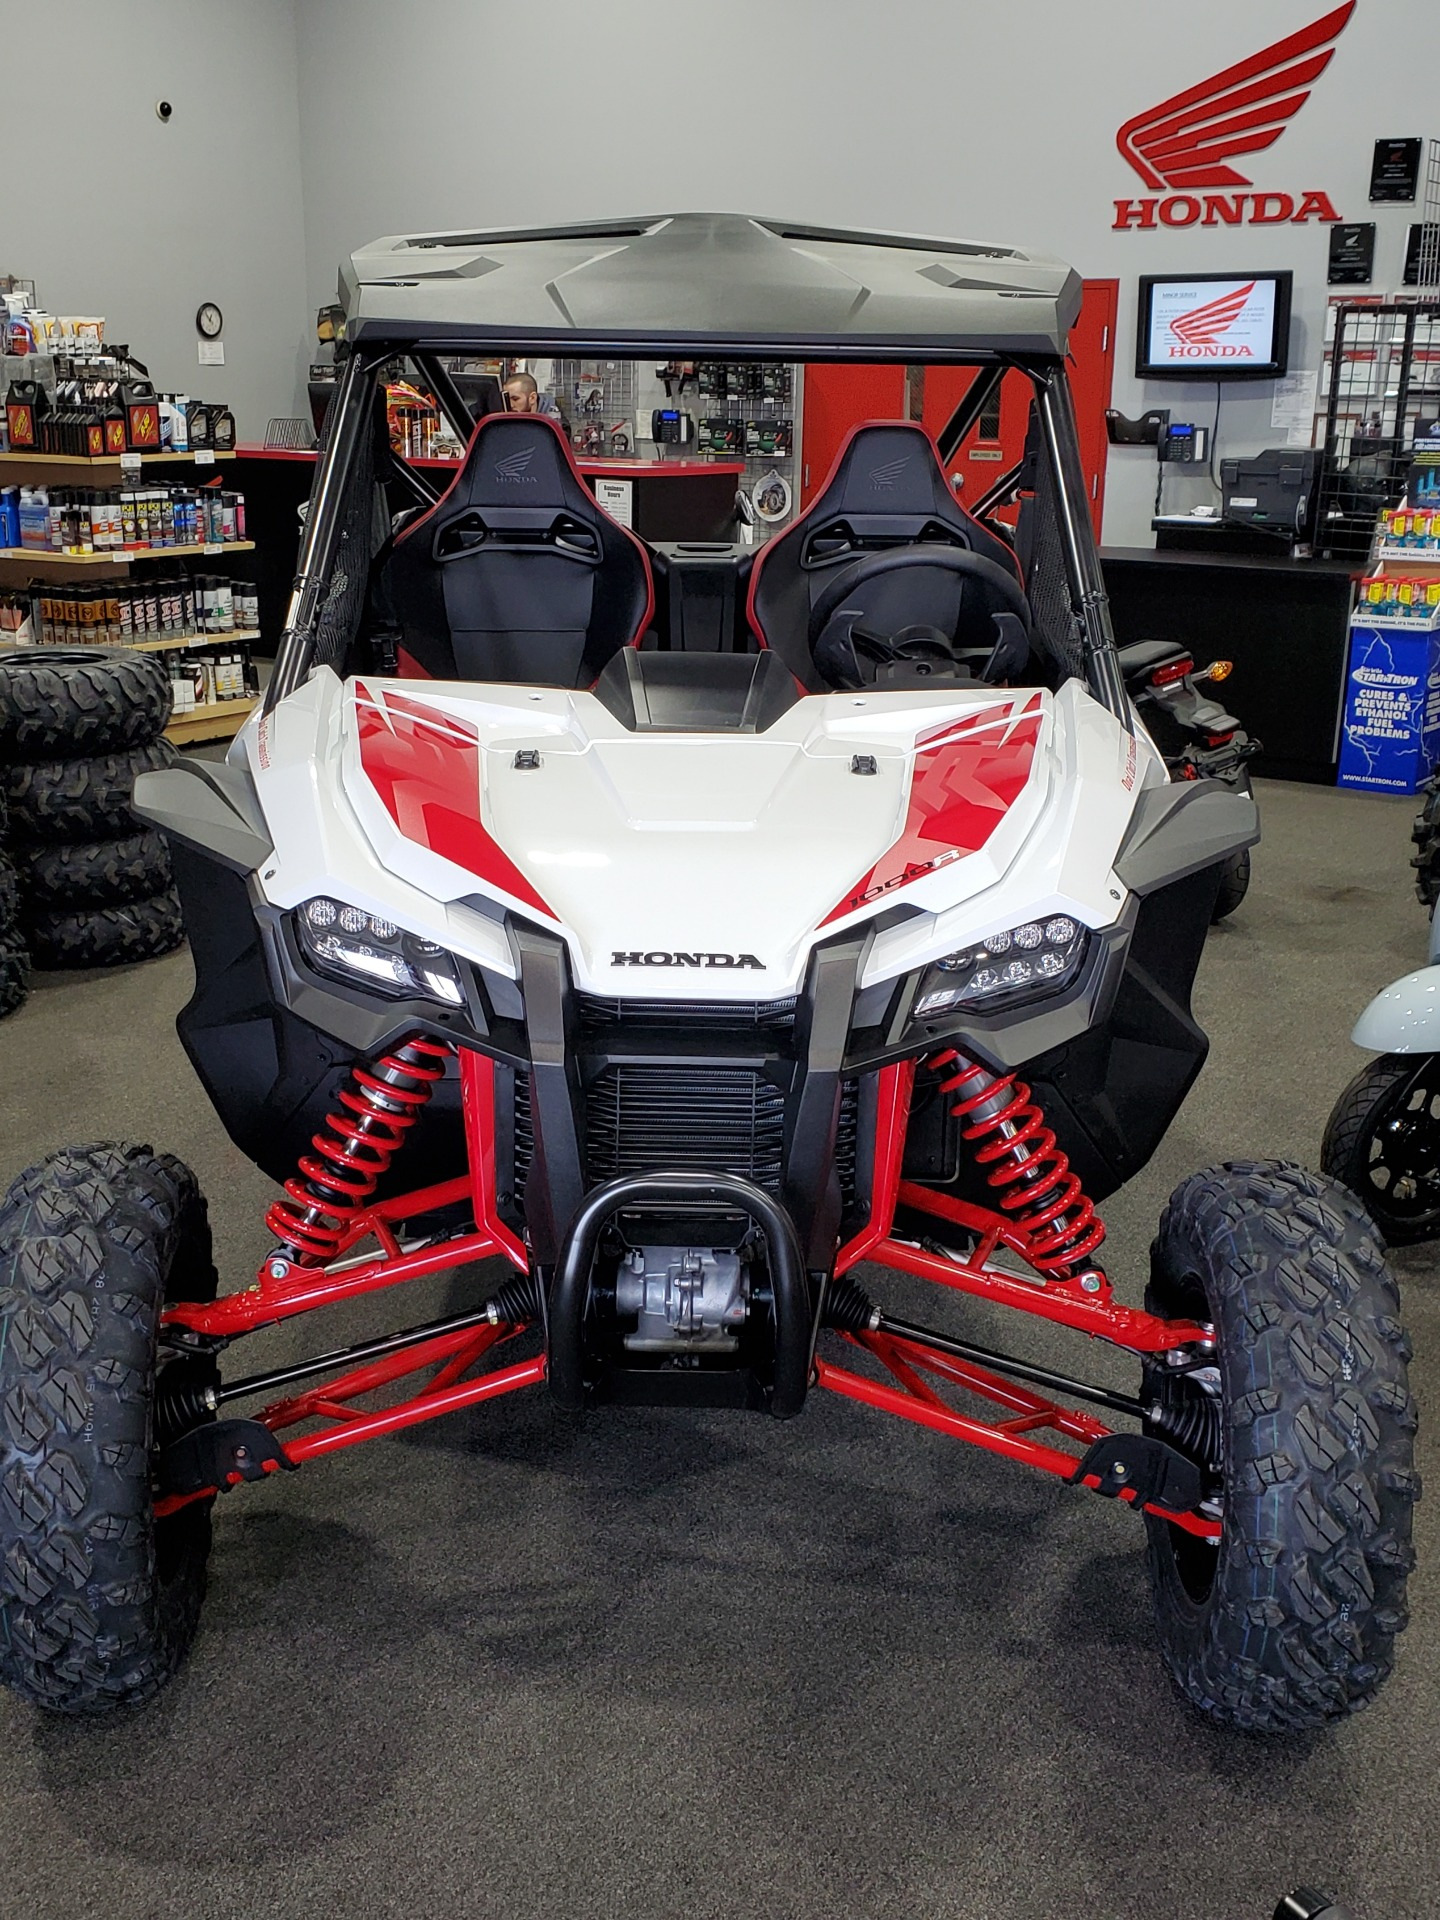 2021 Honda Talon 1000R in Moon Township, Pennsylvania - Photo 2